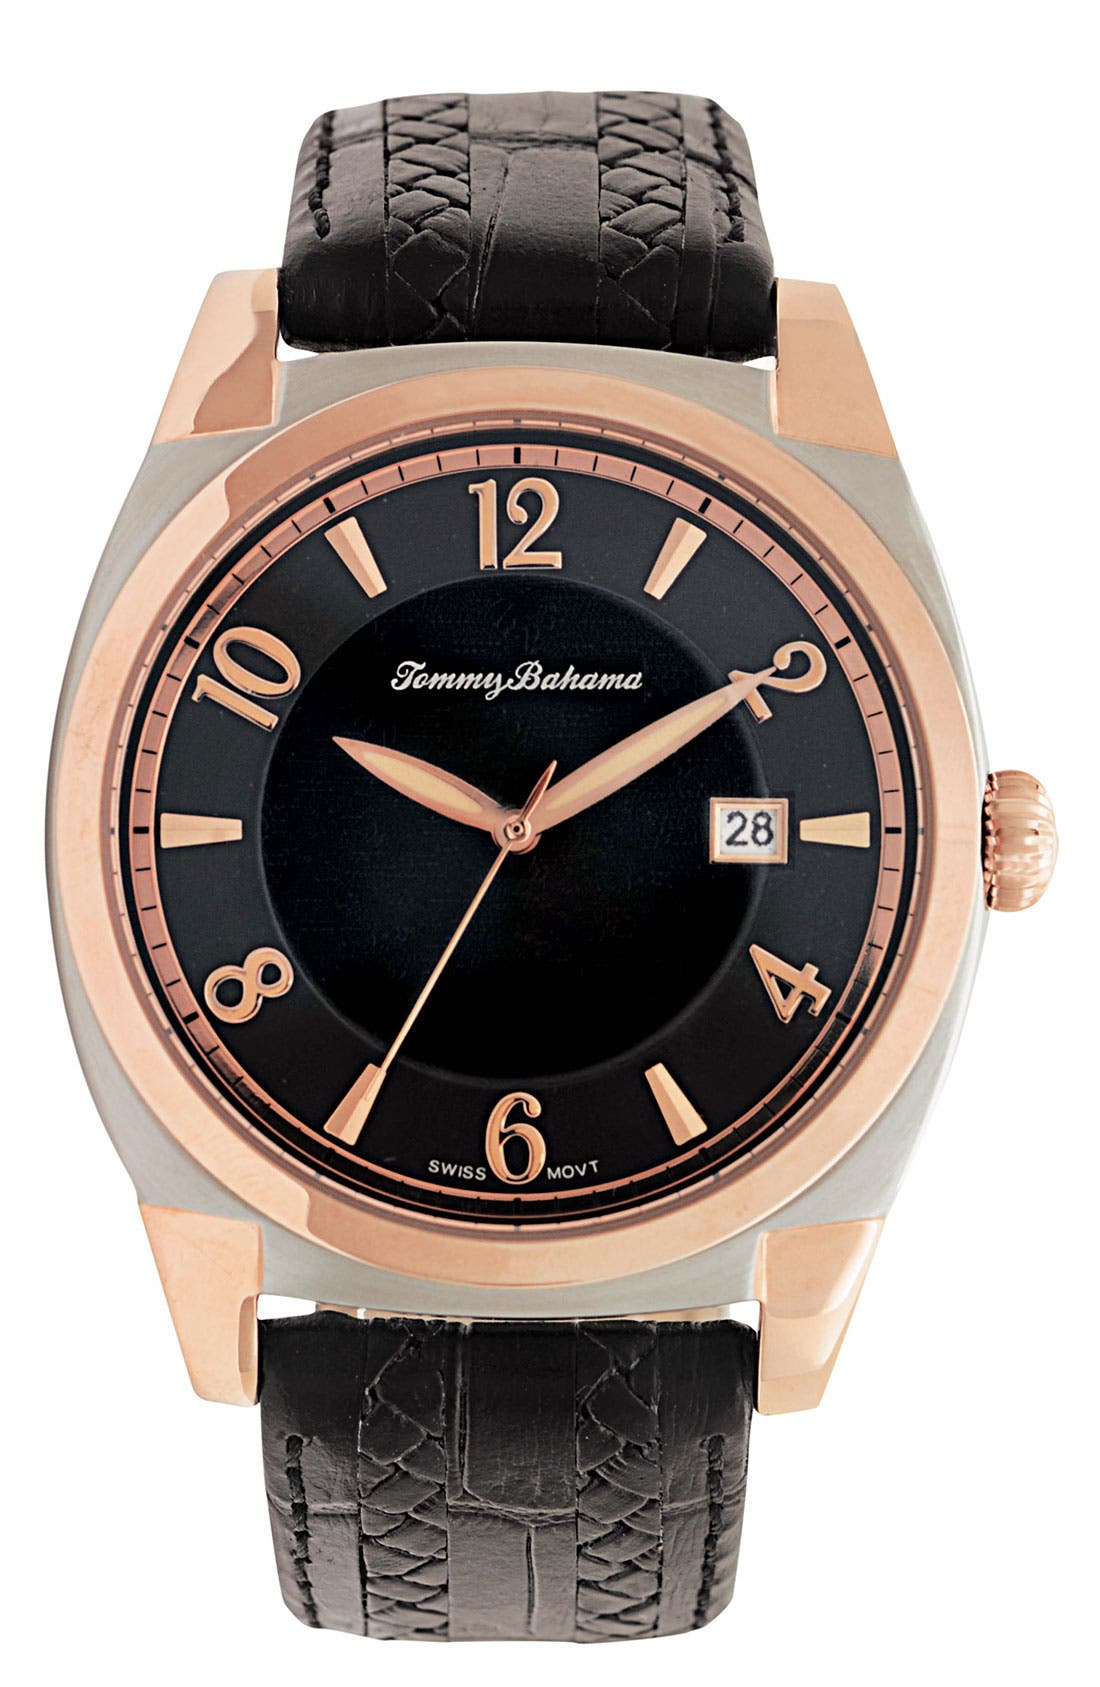 Main Image - Tommy Bahama 'Cubanito' Round Leather Strap Watch, 41mm x 51mm